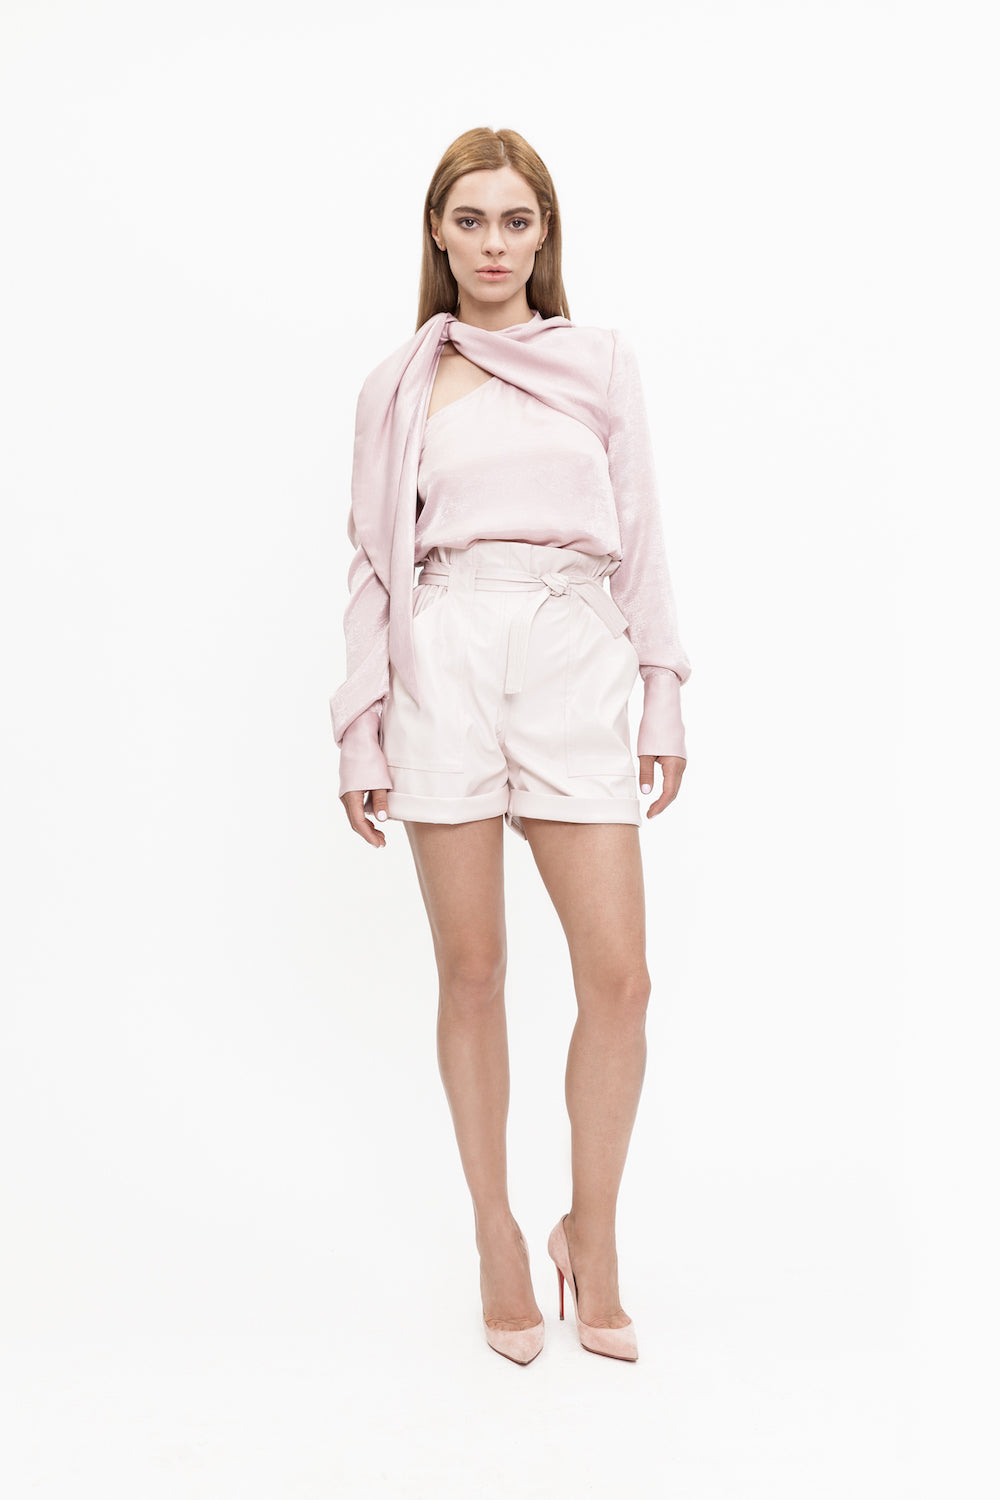 ROSY light pink pants